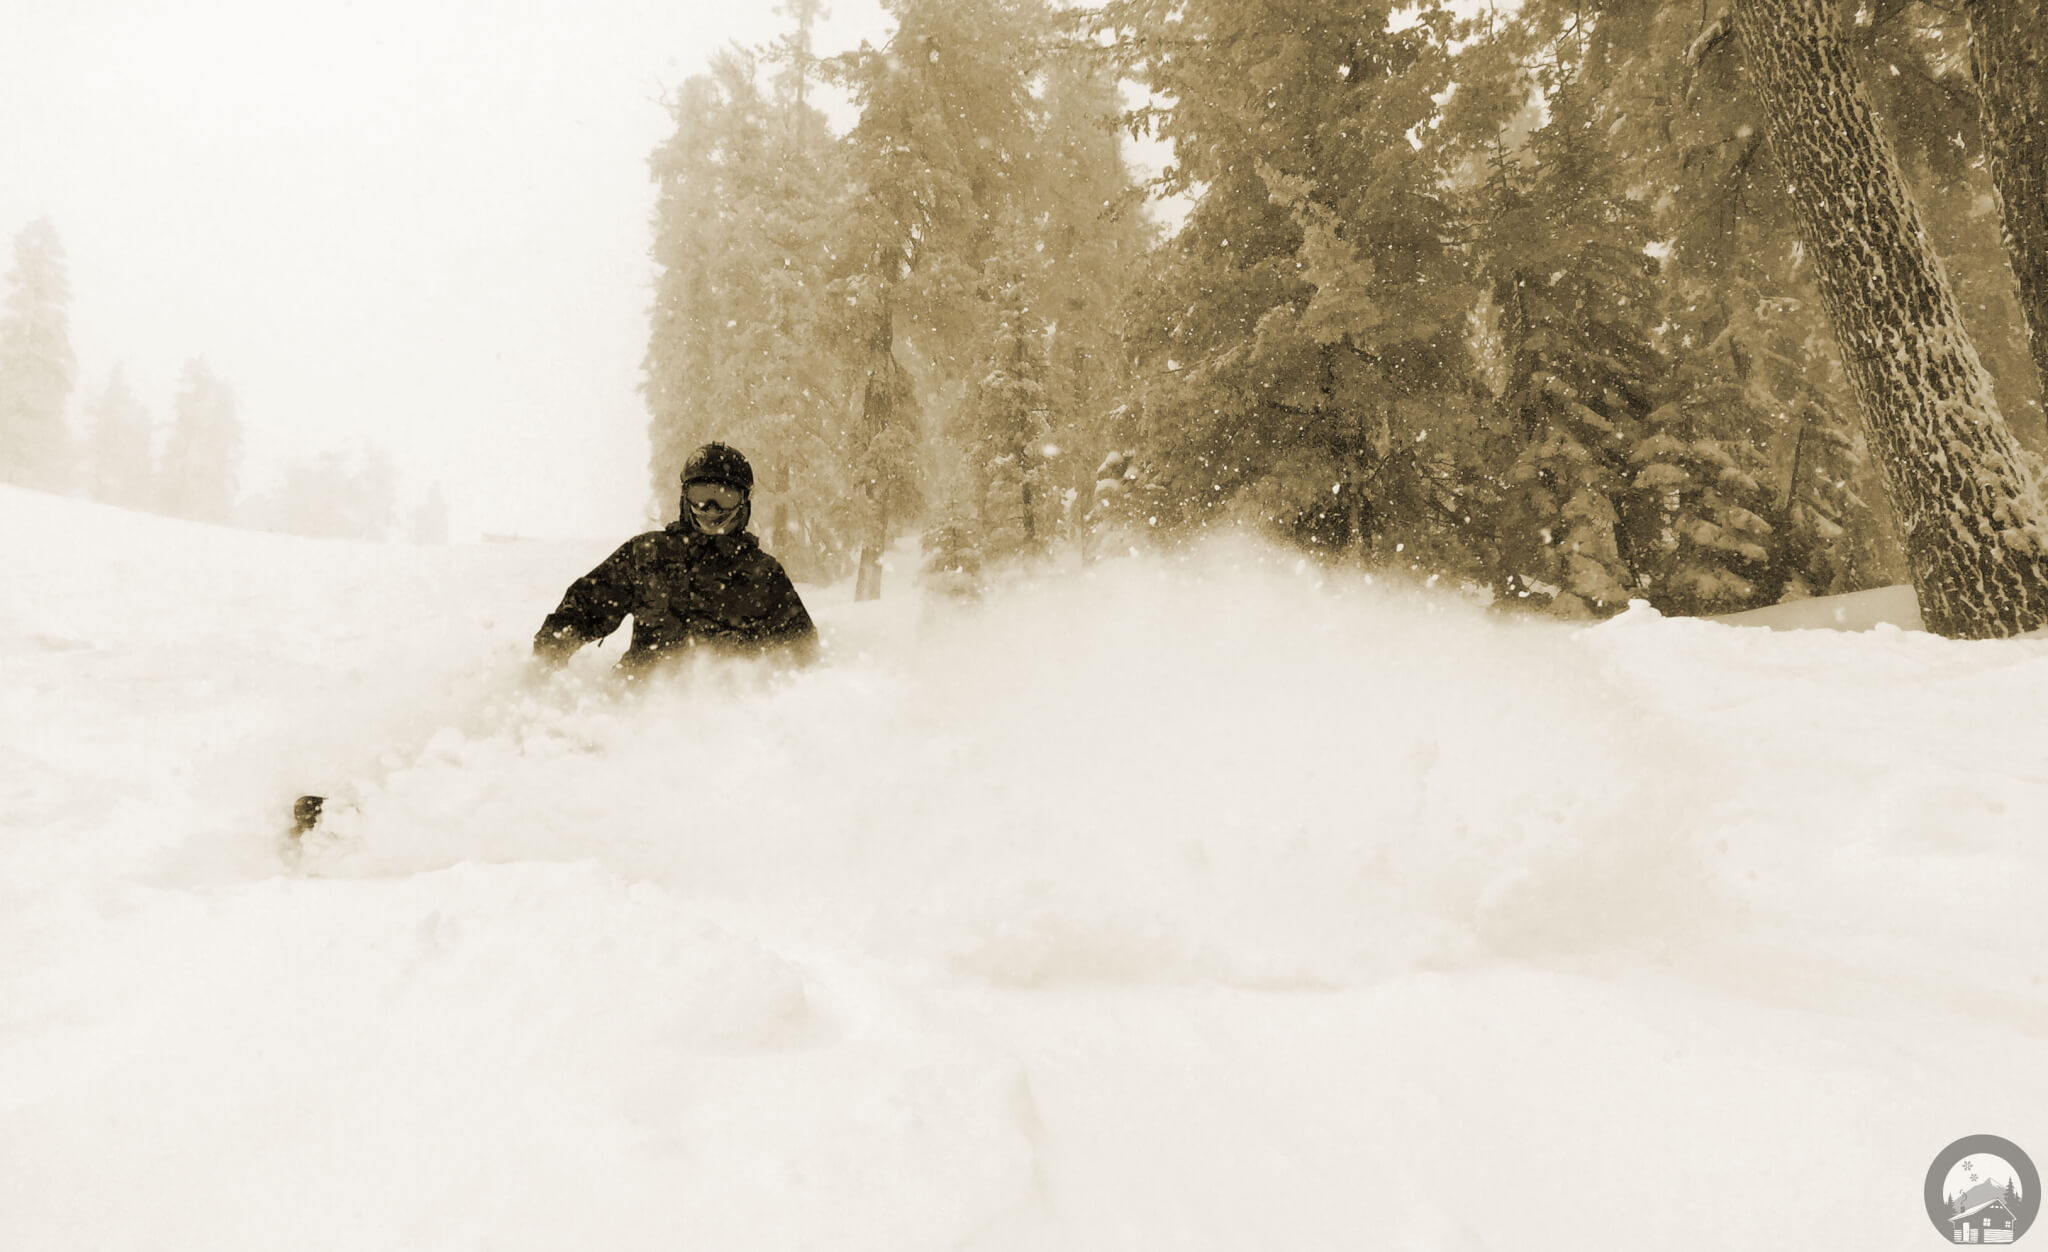 Powder Day at Heavenly Ski Resort Lake Tahoe